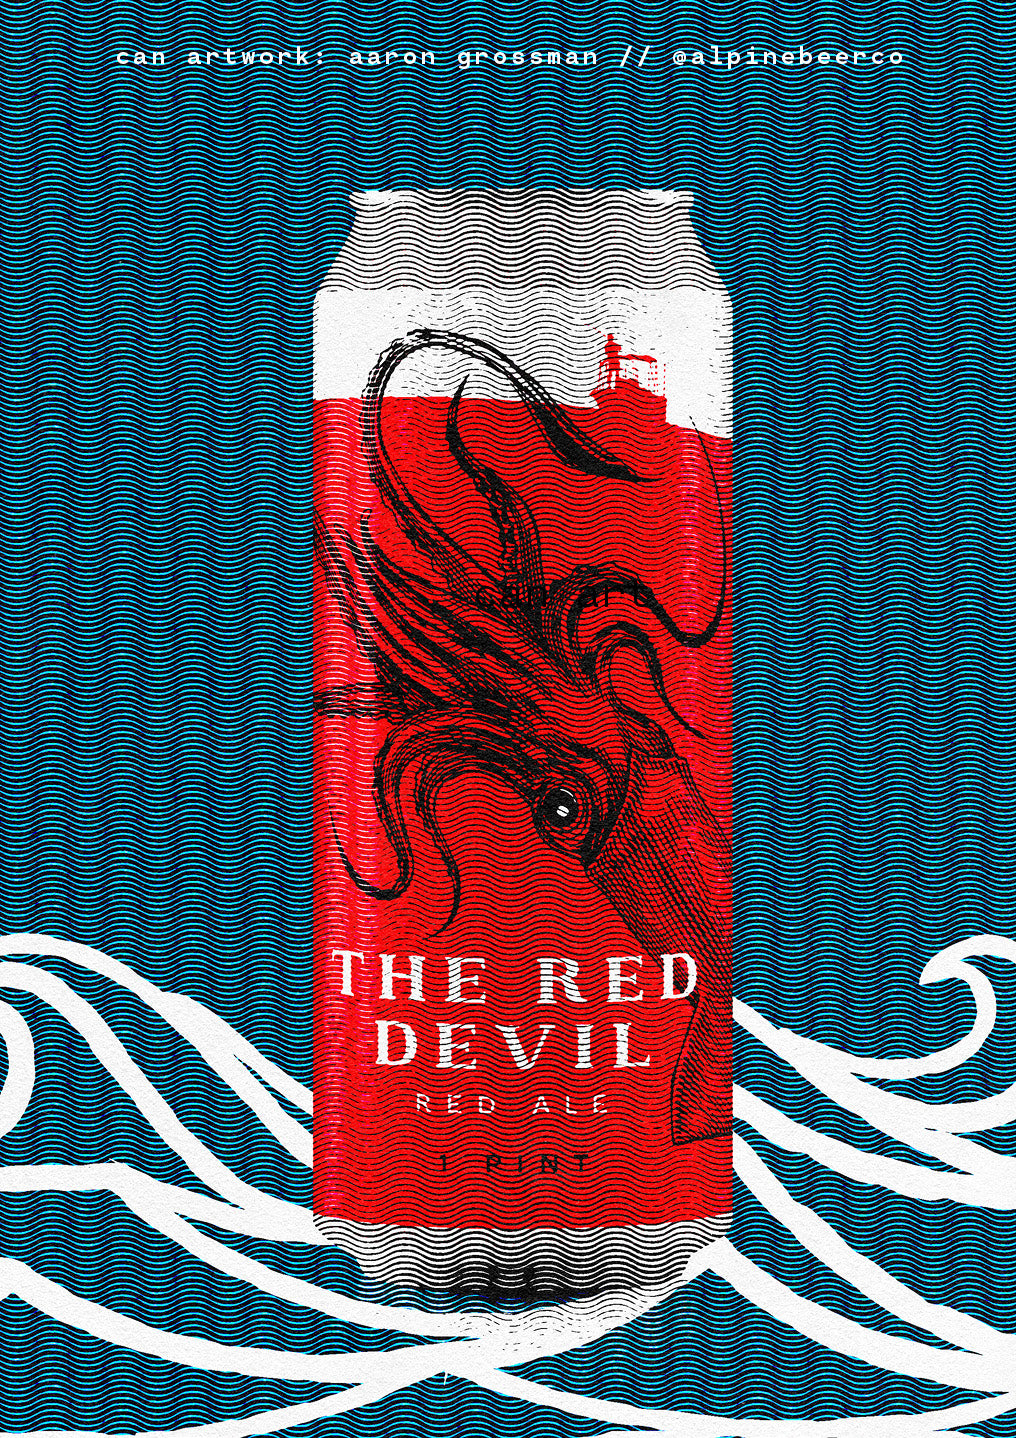 the red devil ale by Alpine Beer Company